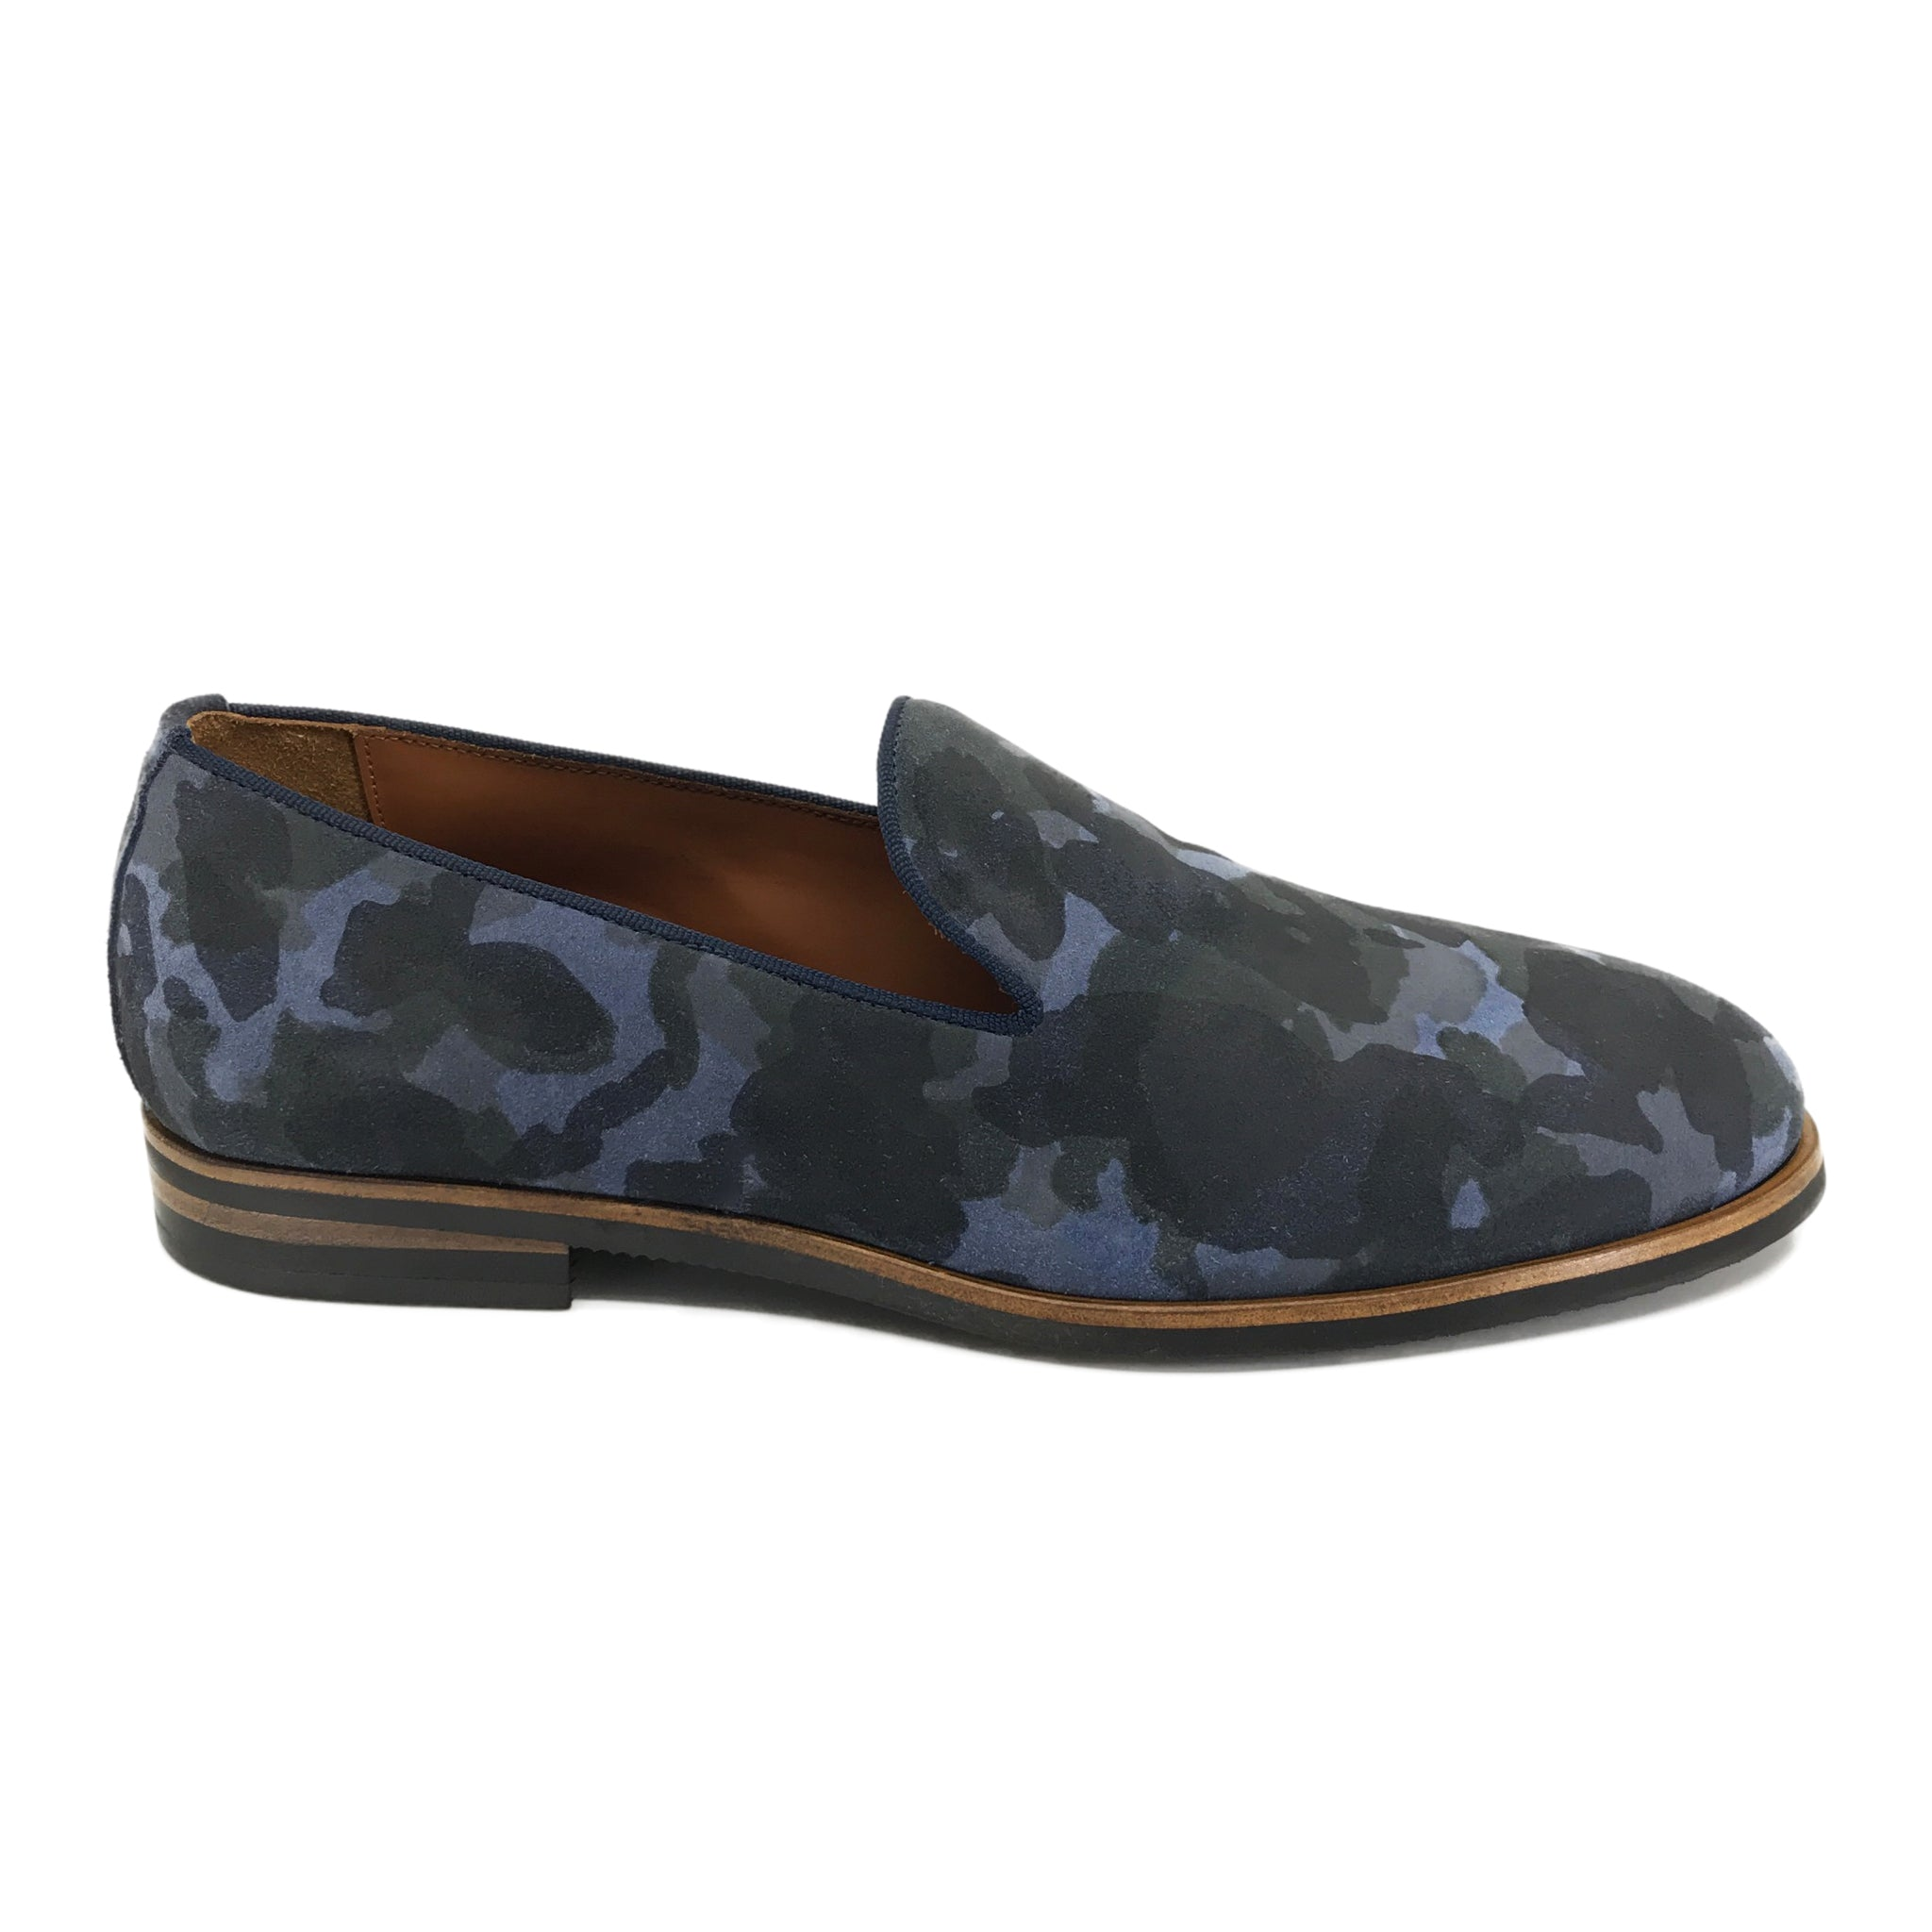 Cielo Loafers|Mens suede loafers